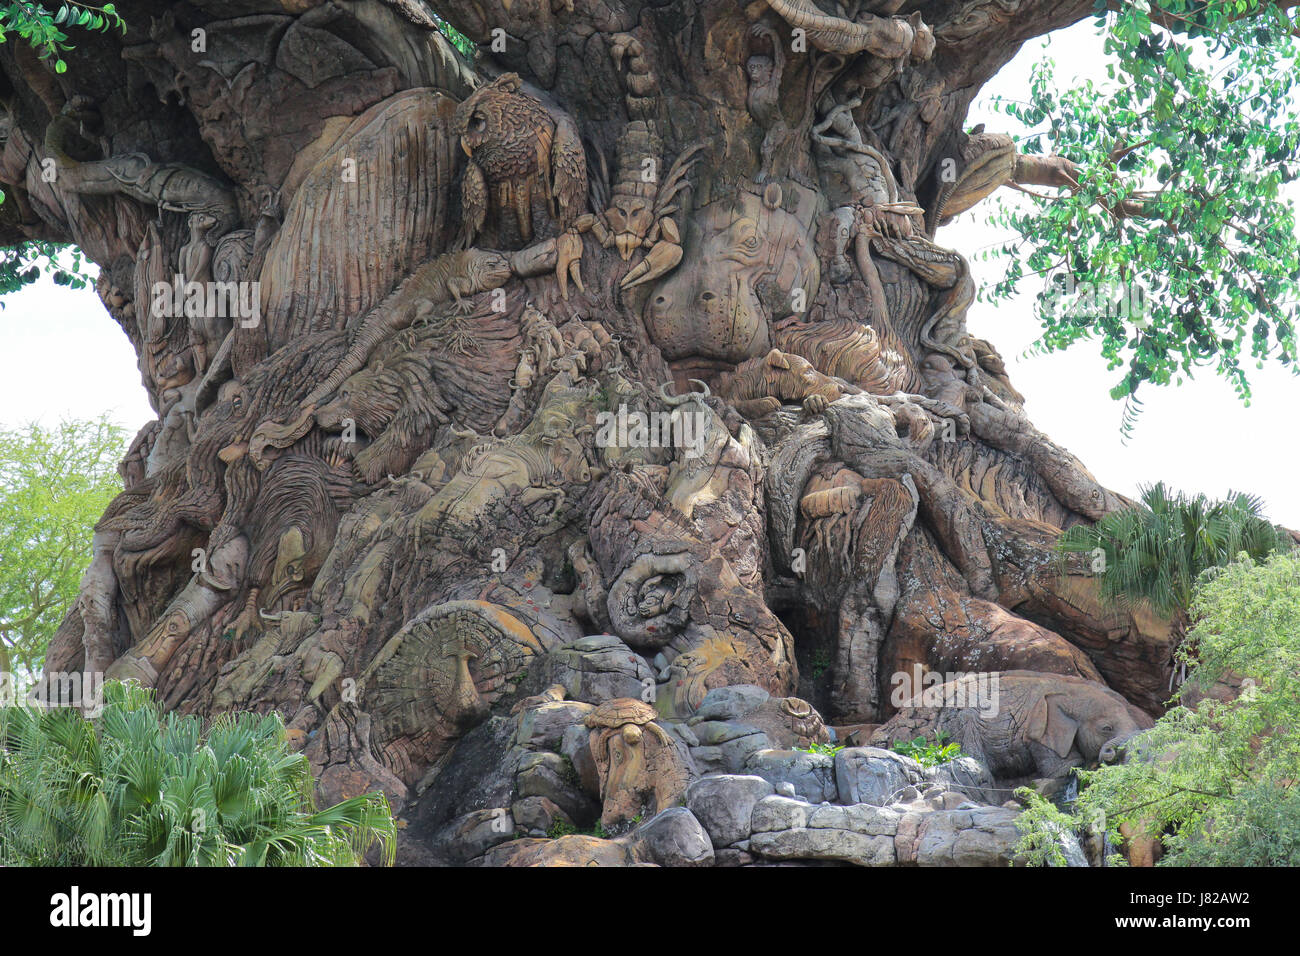 The Tree of Life at Disney s Animal Kingdom in Florida Stock Photo     The Tree of Life at Disney s Animal Kingdom in Florida